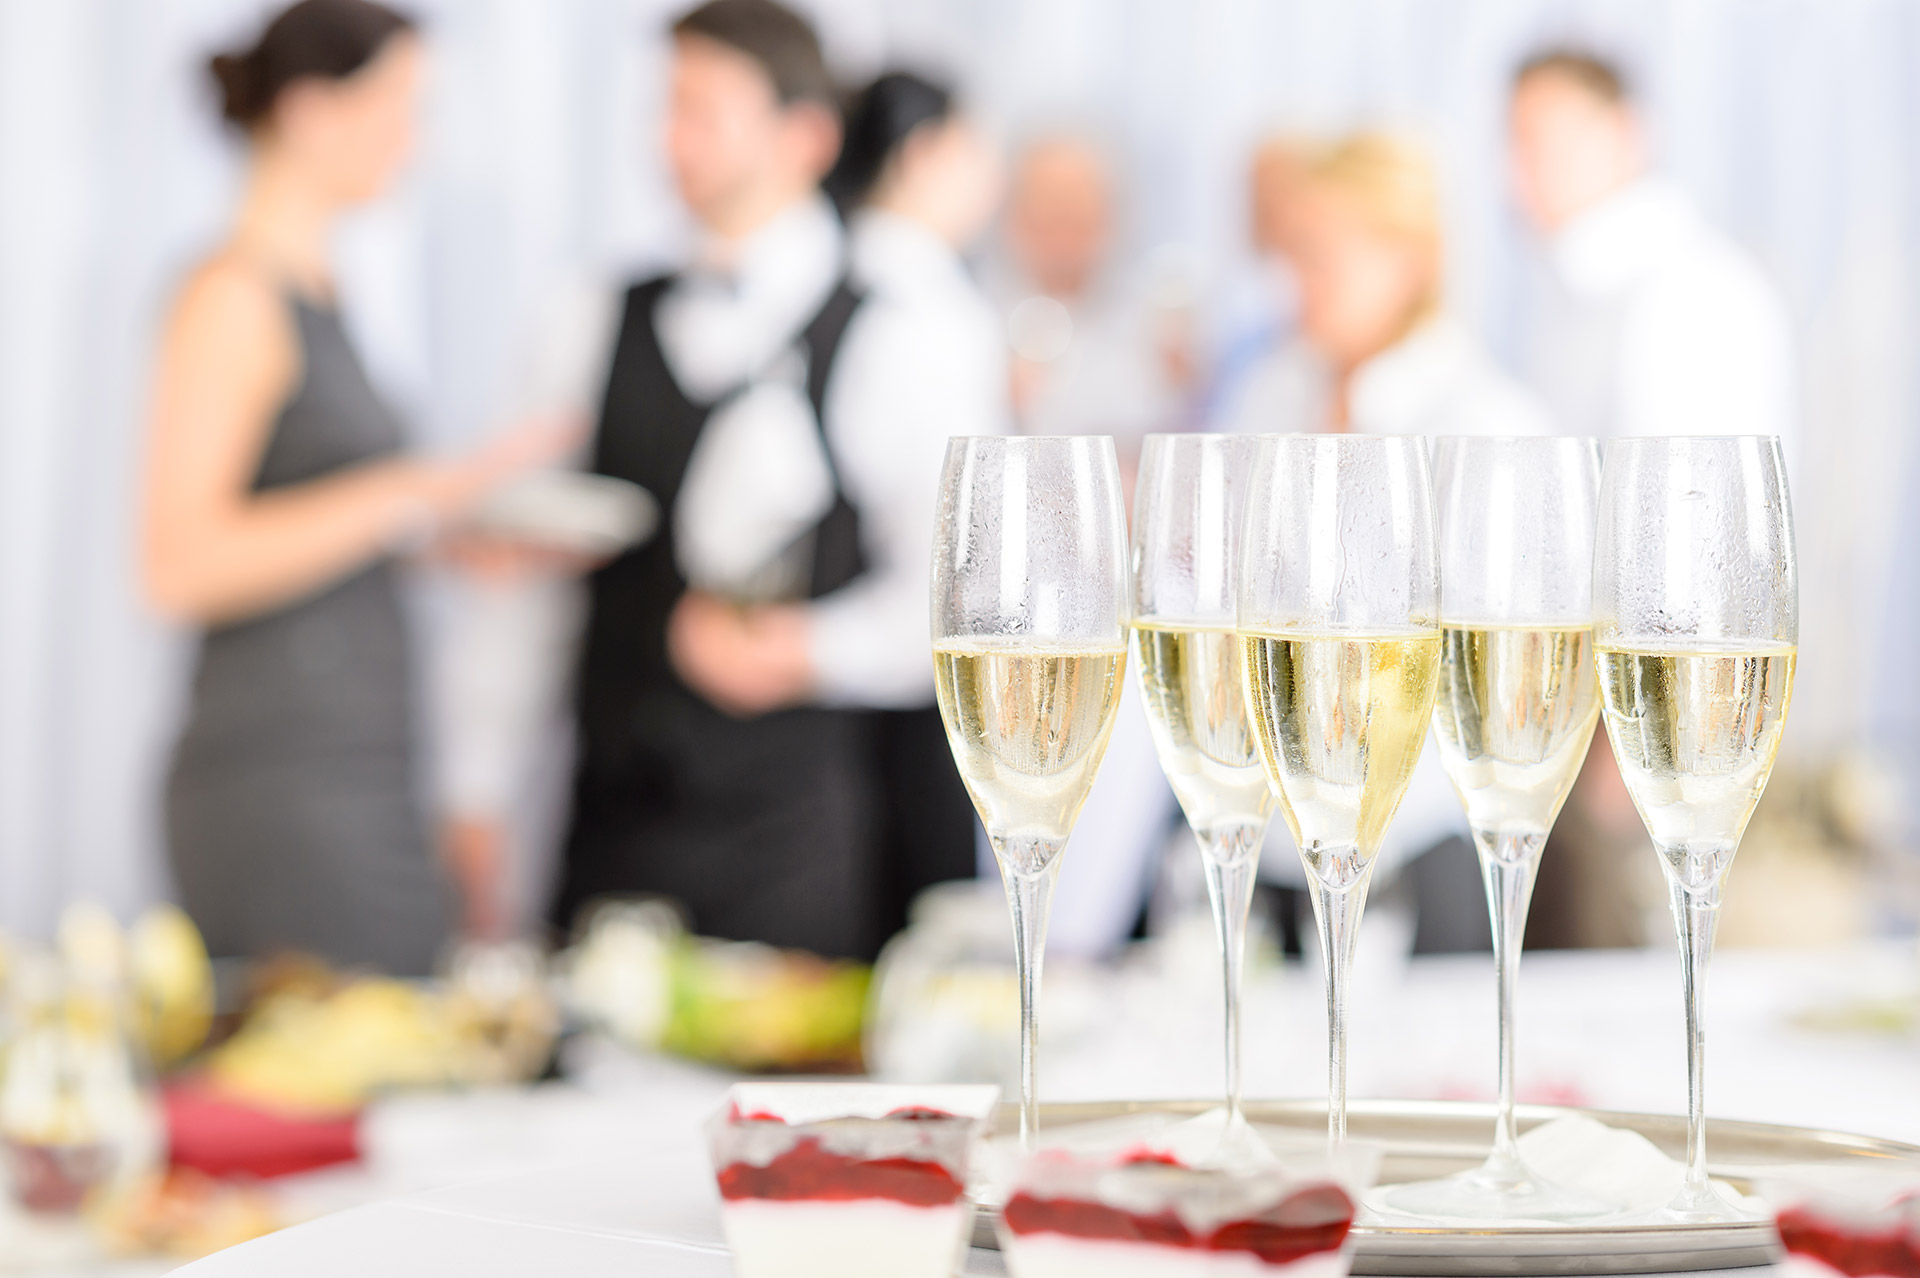 Corporate Event. - Take your business meeting, company fundraiser or staff holiday party to the next level. Book your next corporate event with us! Colleagues and invited guests will thank you after partying with the MillionDollaMan.